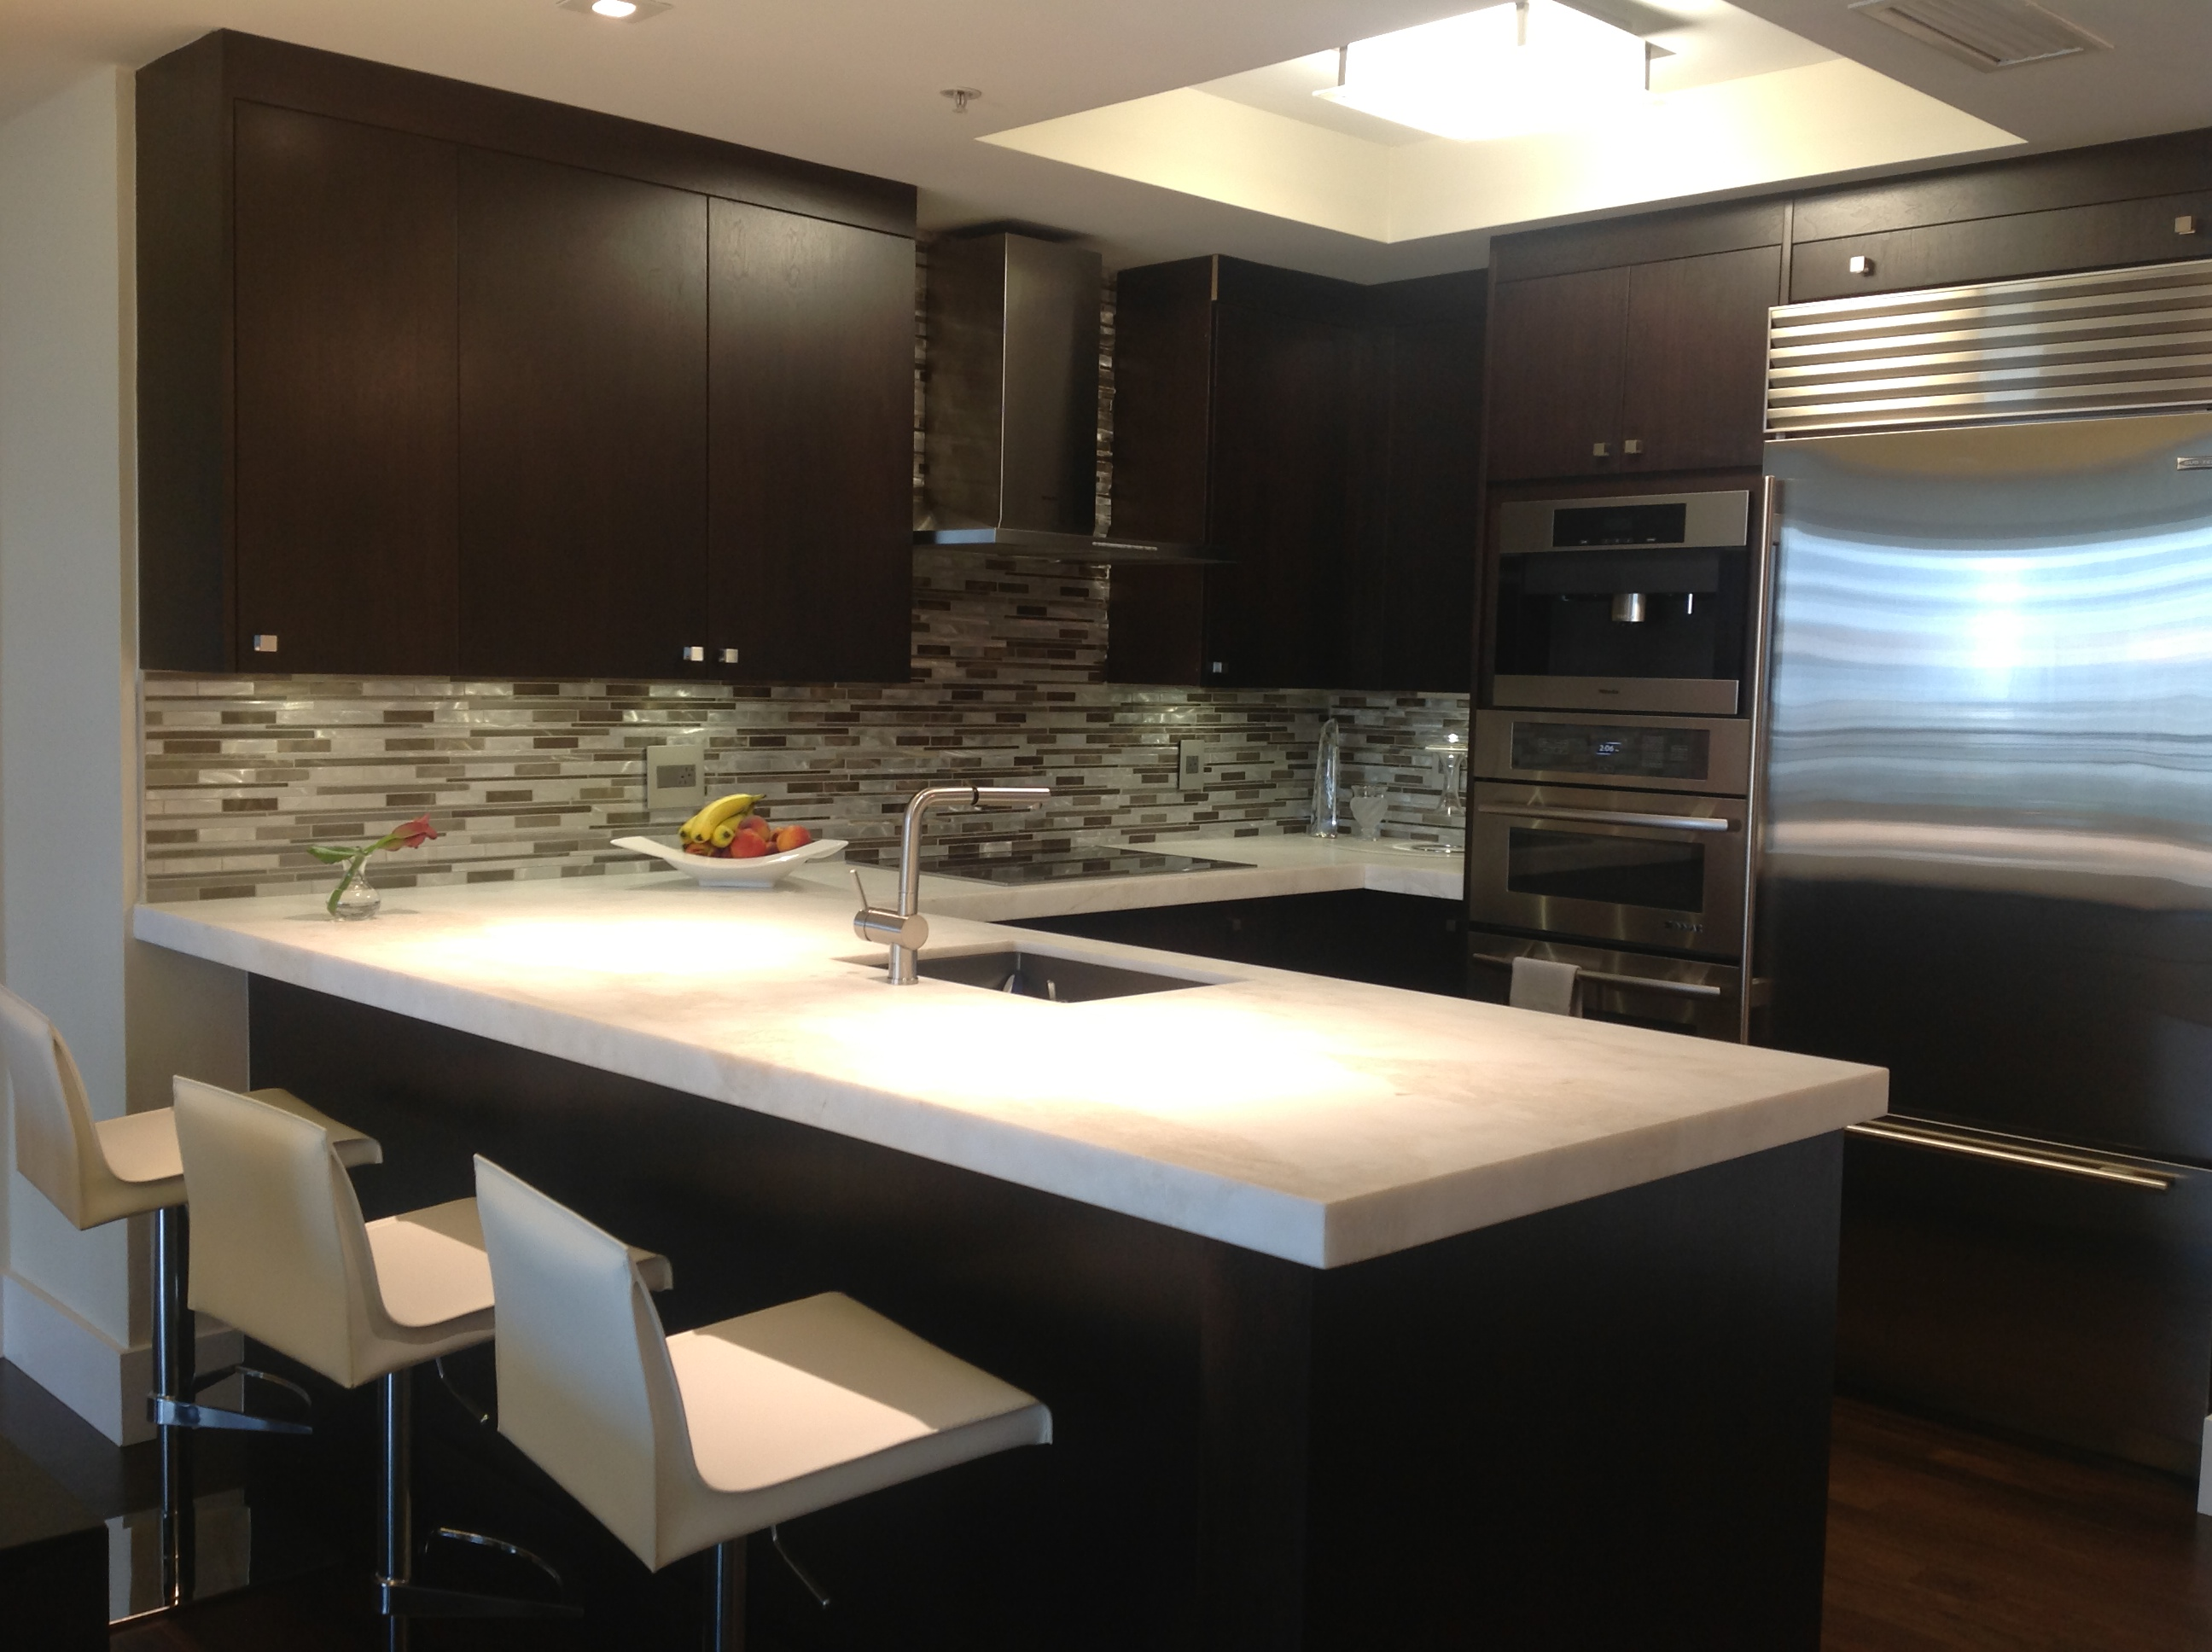 JandJ Custom Kitchen cabinets Company | luxurious Kitchen